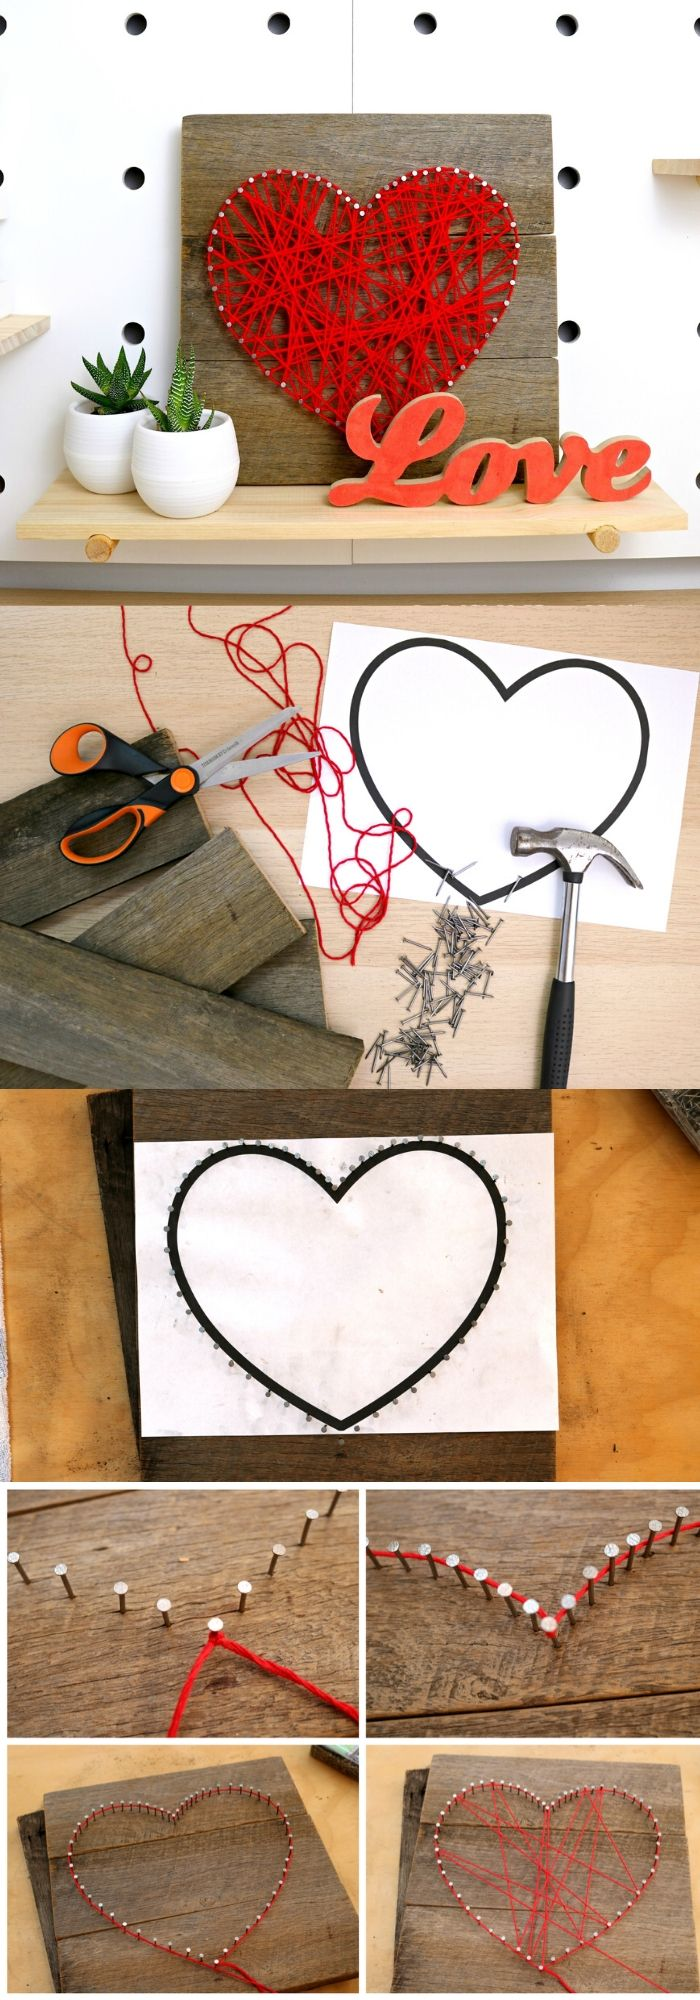 The string heart